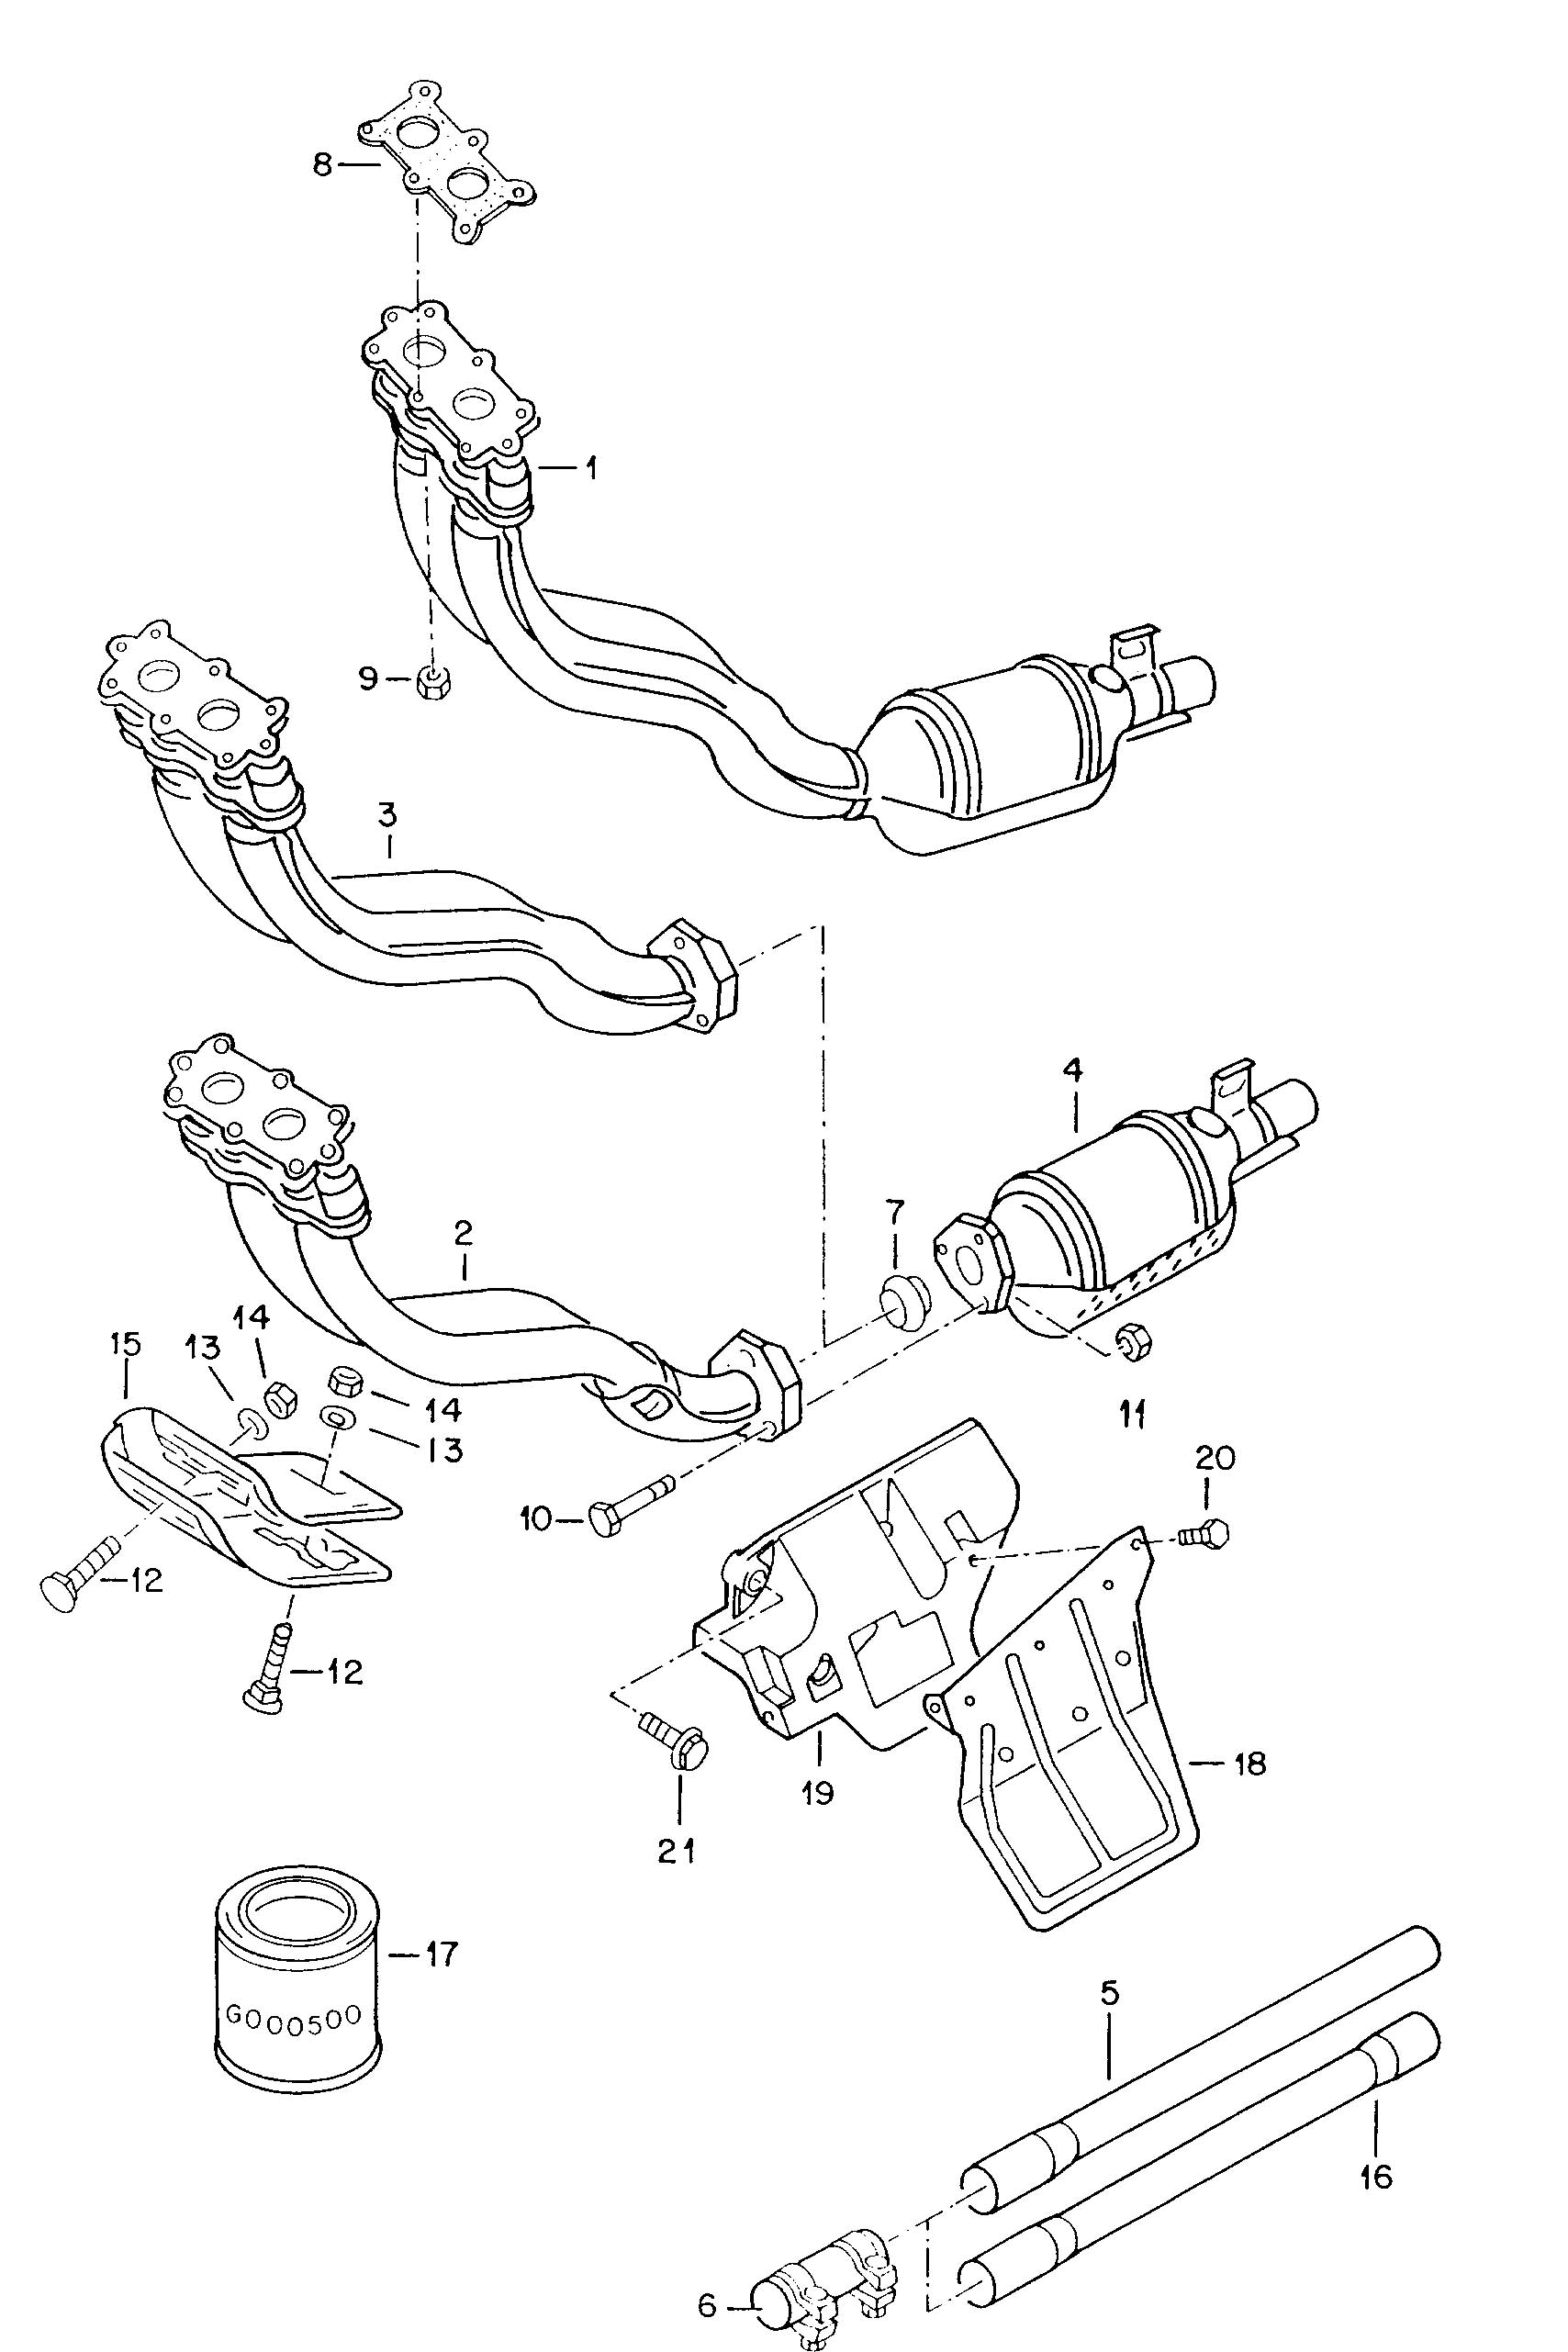 2001 Vw Jetta 1 8t Serpentine Belt Diagram